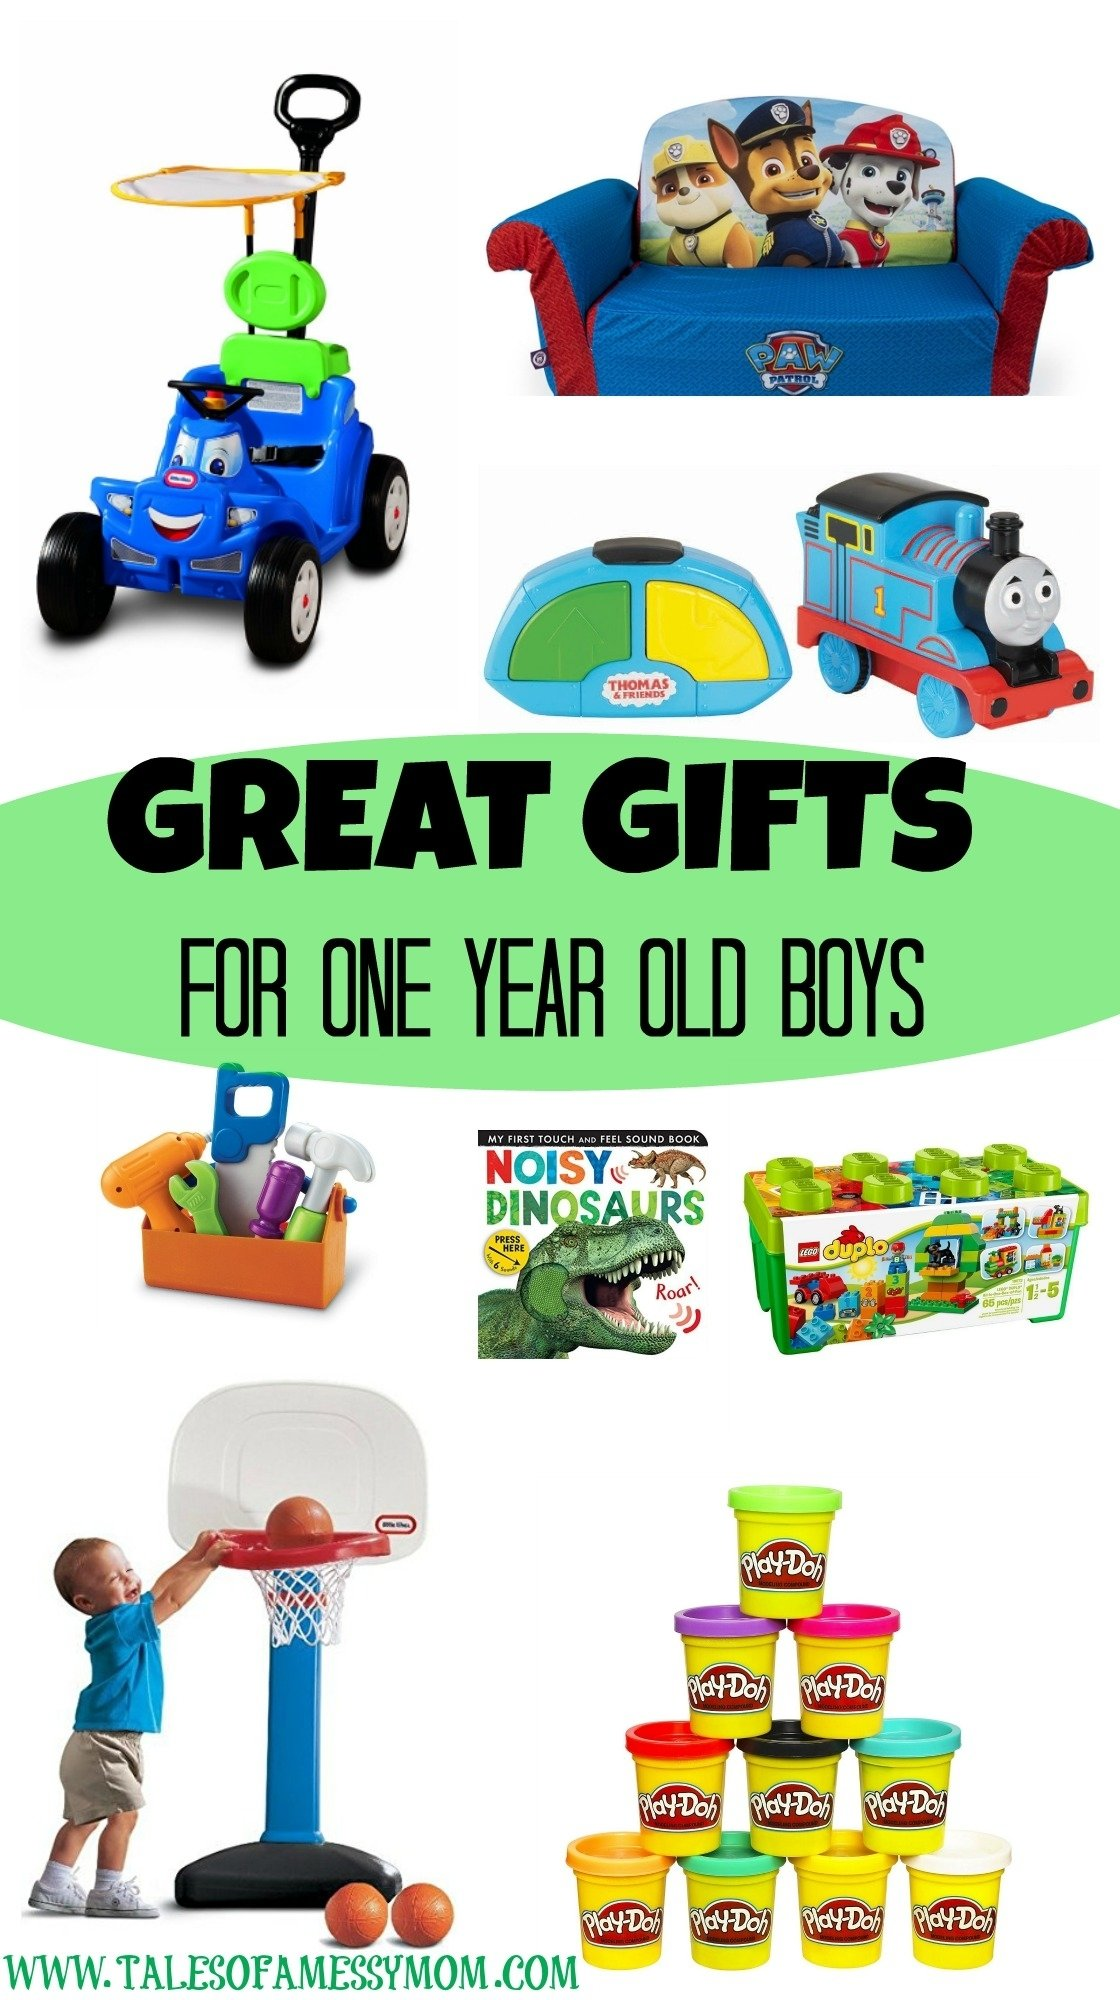 10 Unique Gift Ideas For One Year Old Boy gift ideas for one year old boys tales of a messy mom 2020